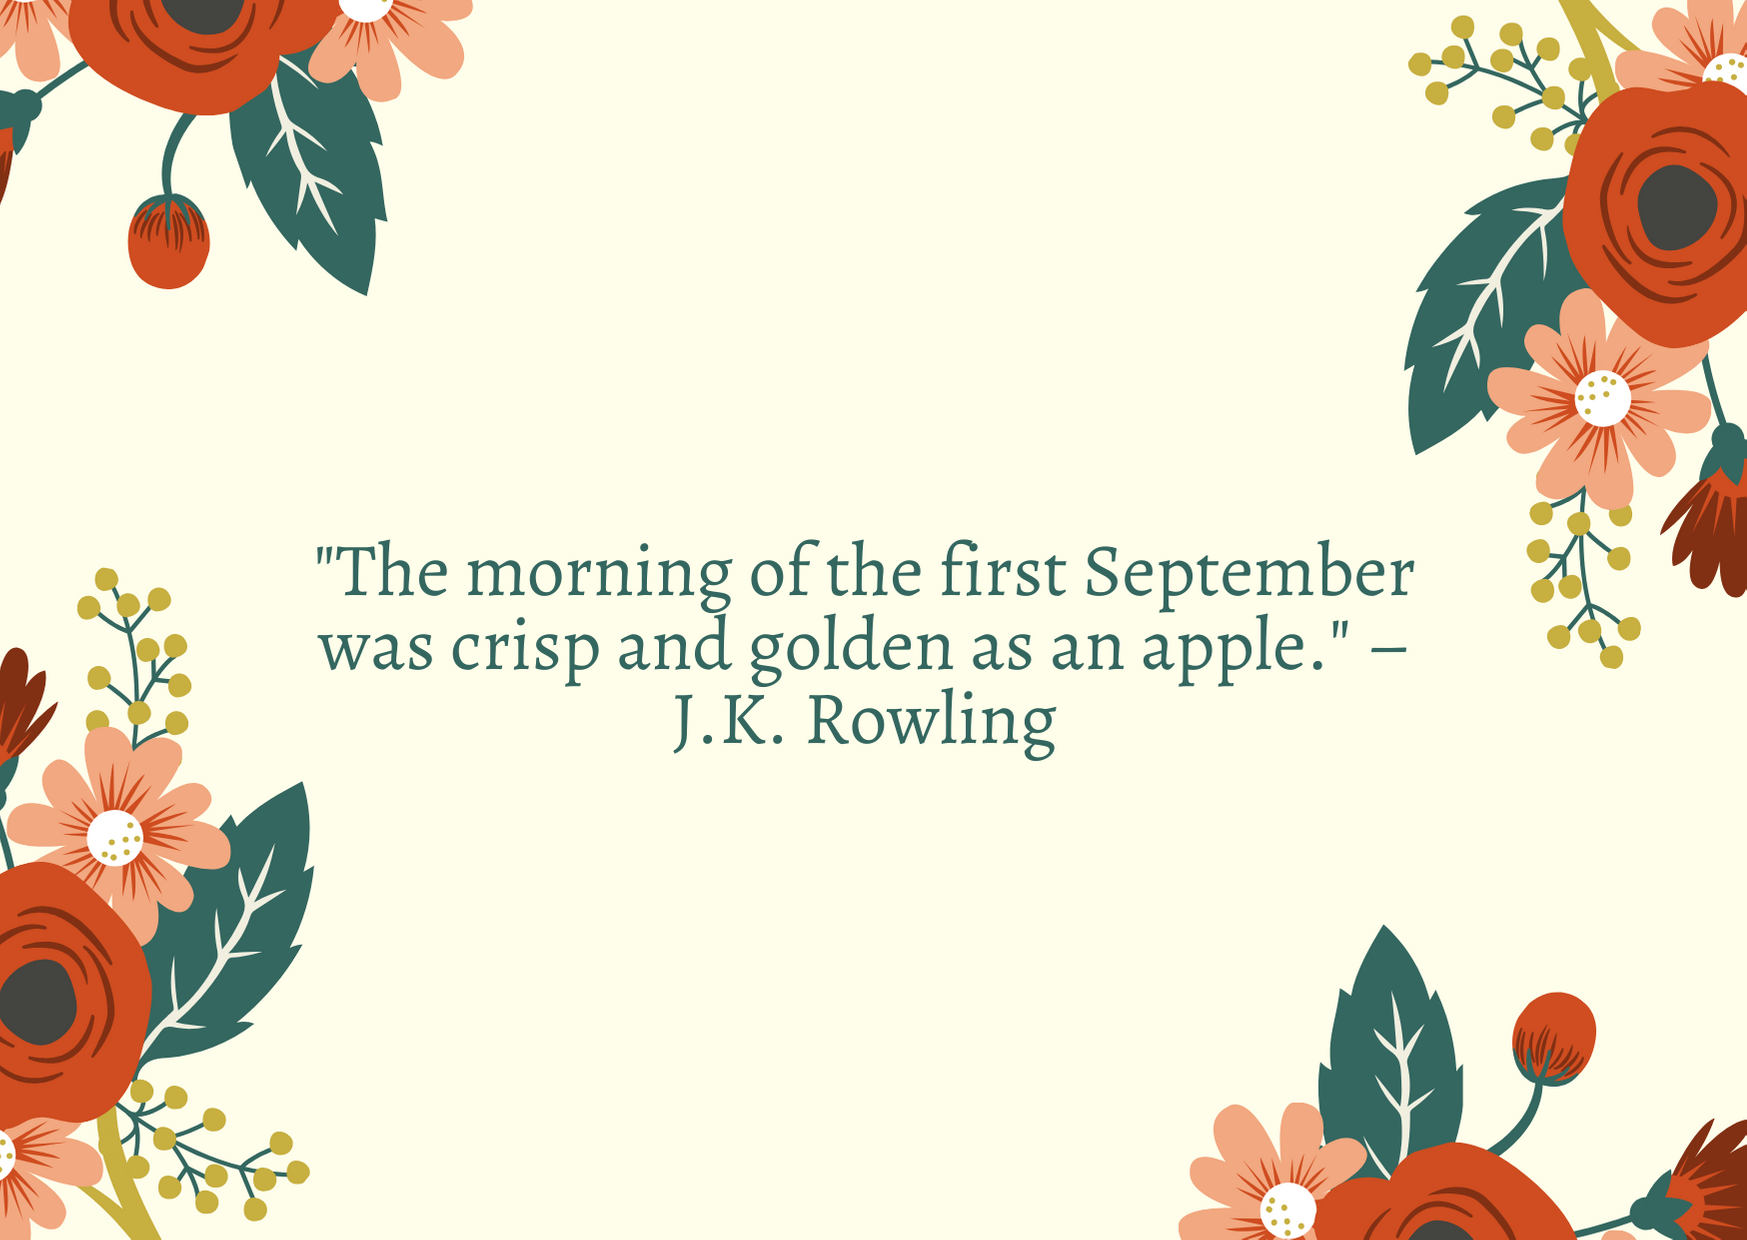 """The morning of the first September was crisp and golden as an apple."" – J.K. Rowling"